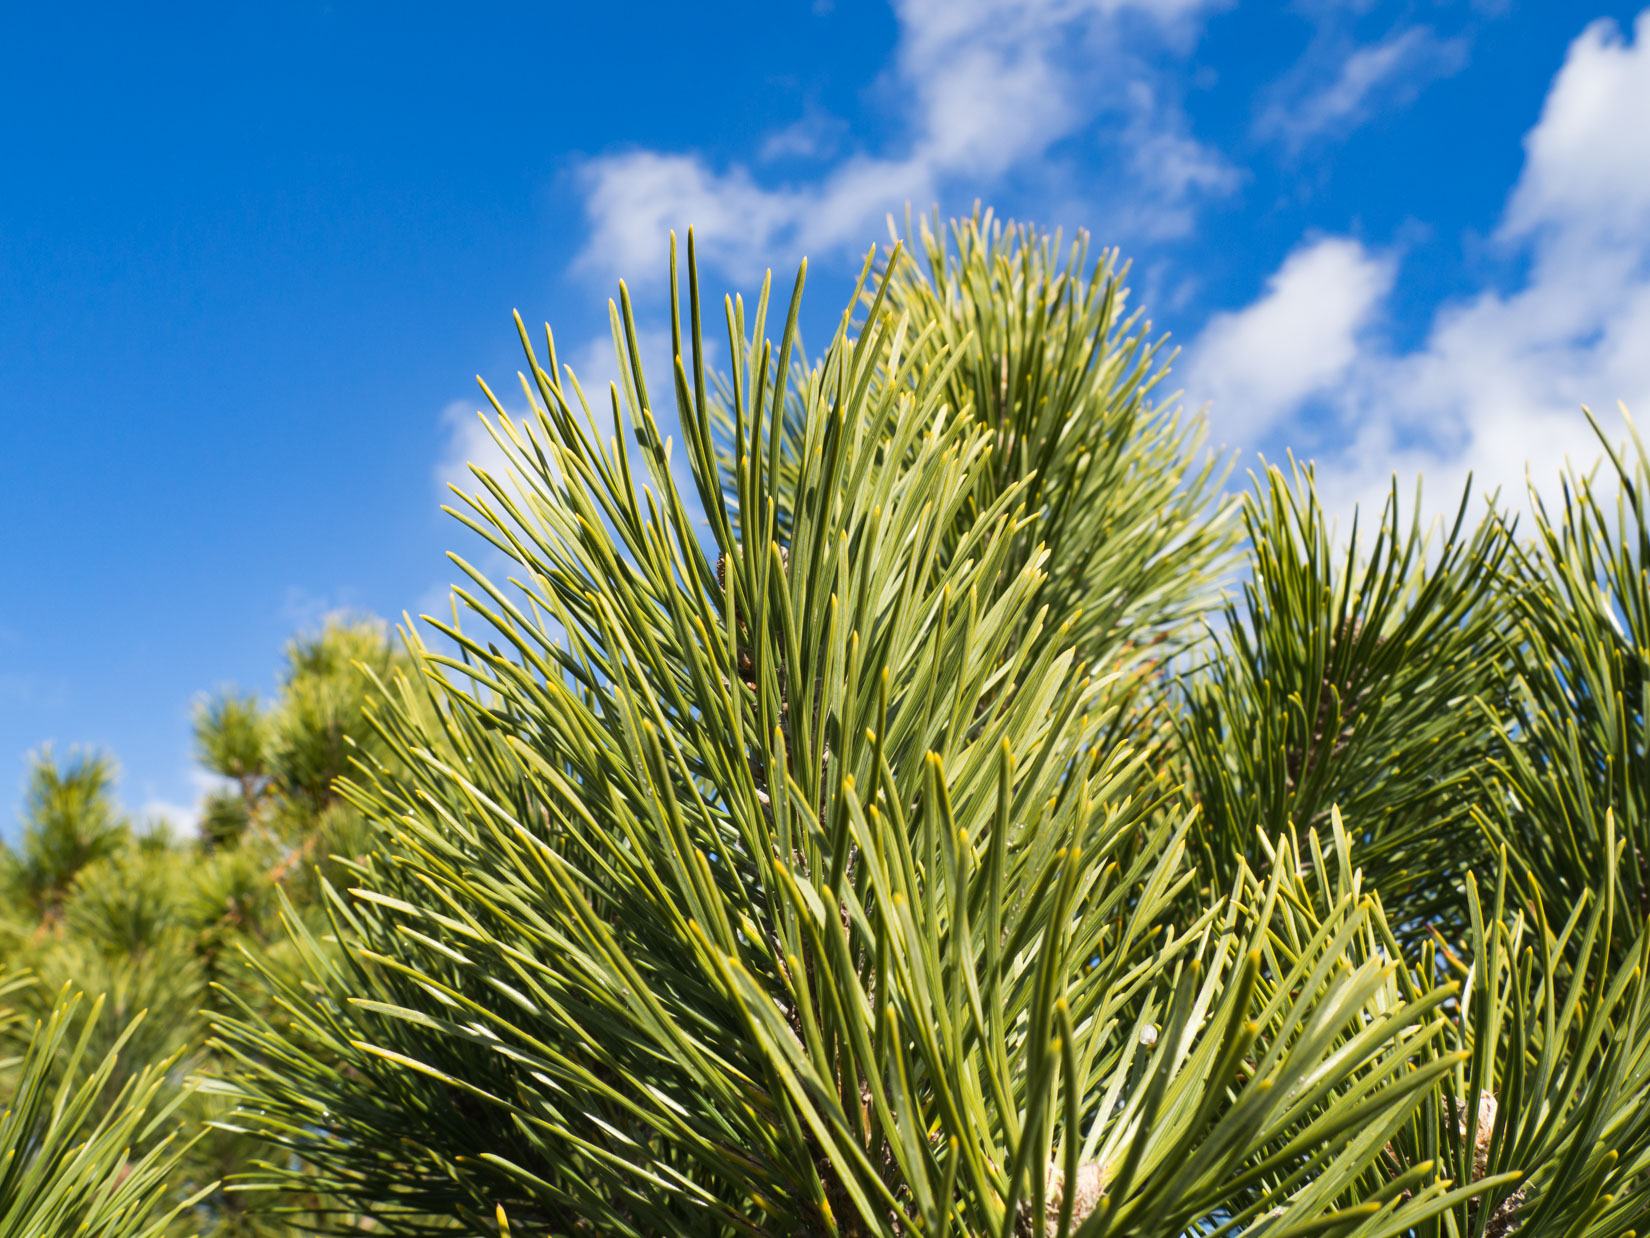 Pine Trees Under Blue Sky